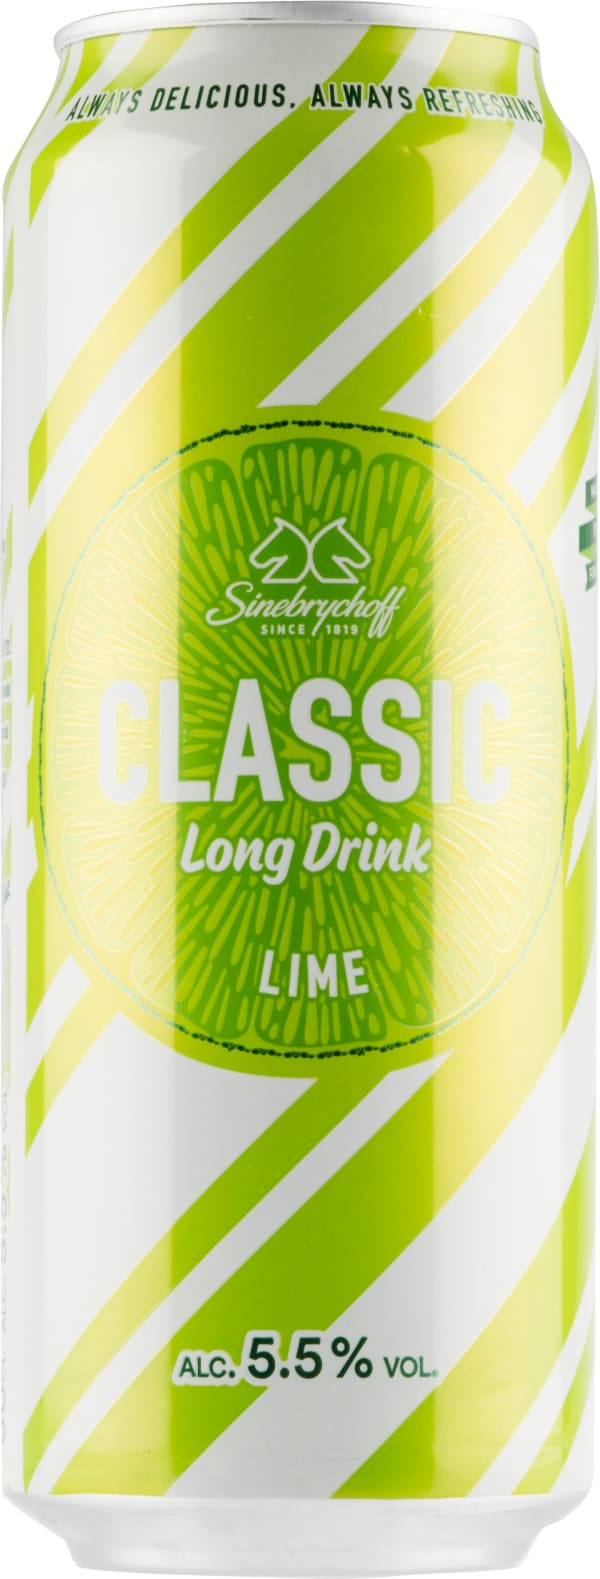 Sinebrychoff Classic Long Drink Lime burk